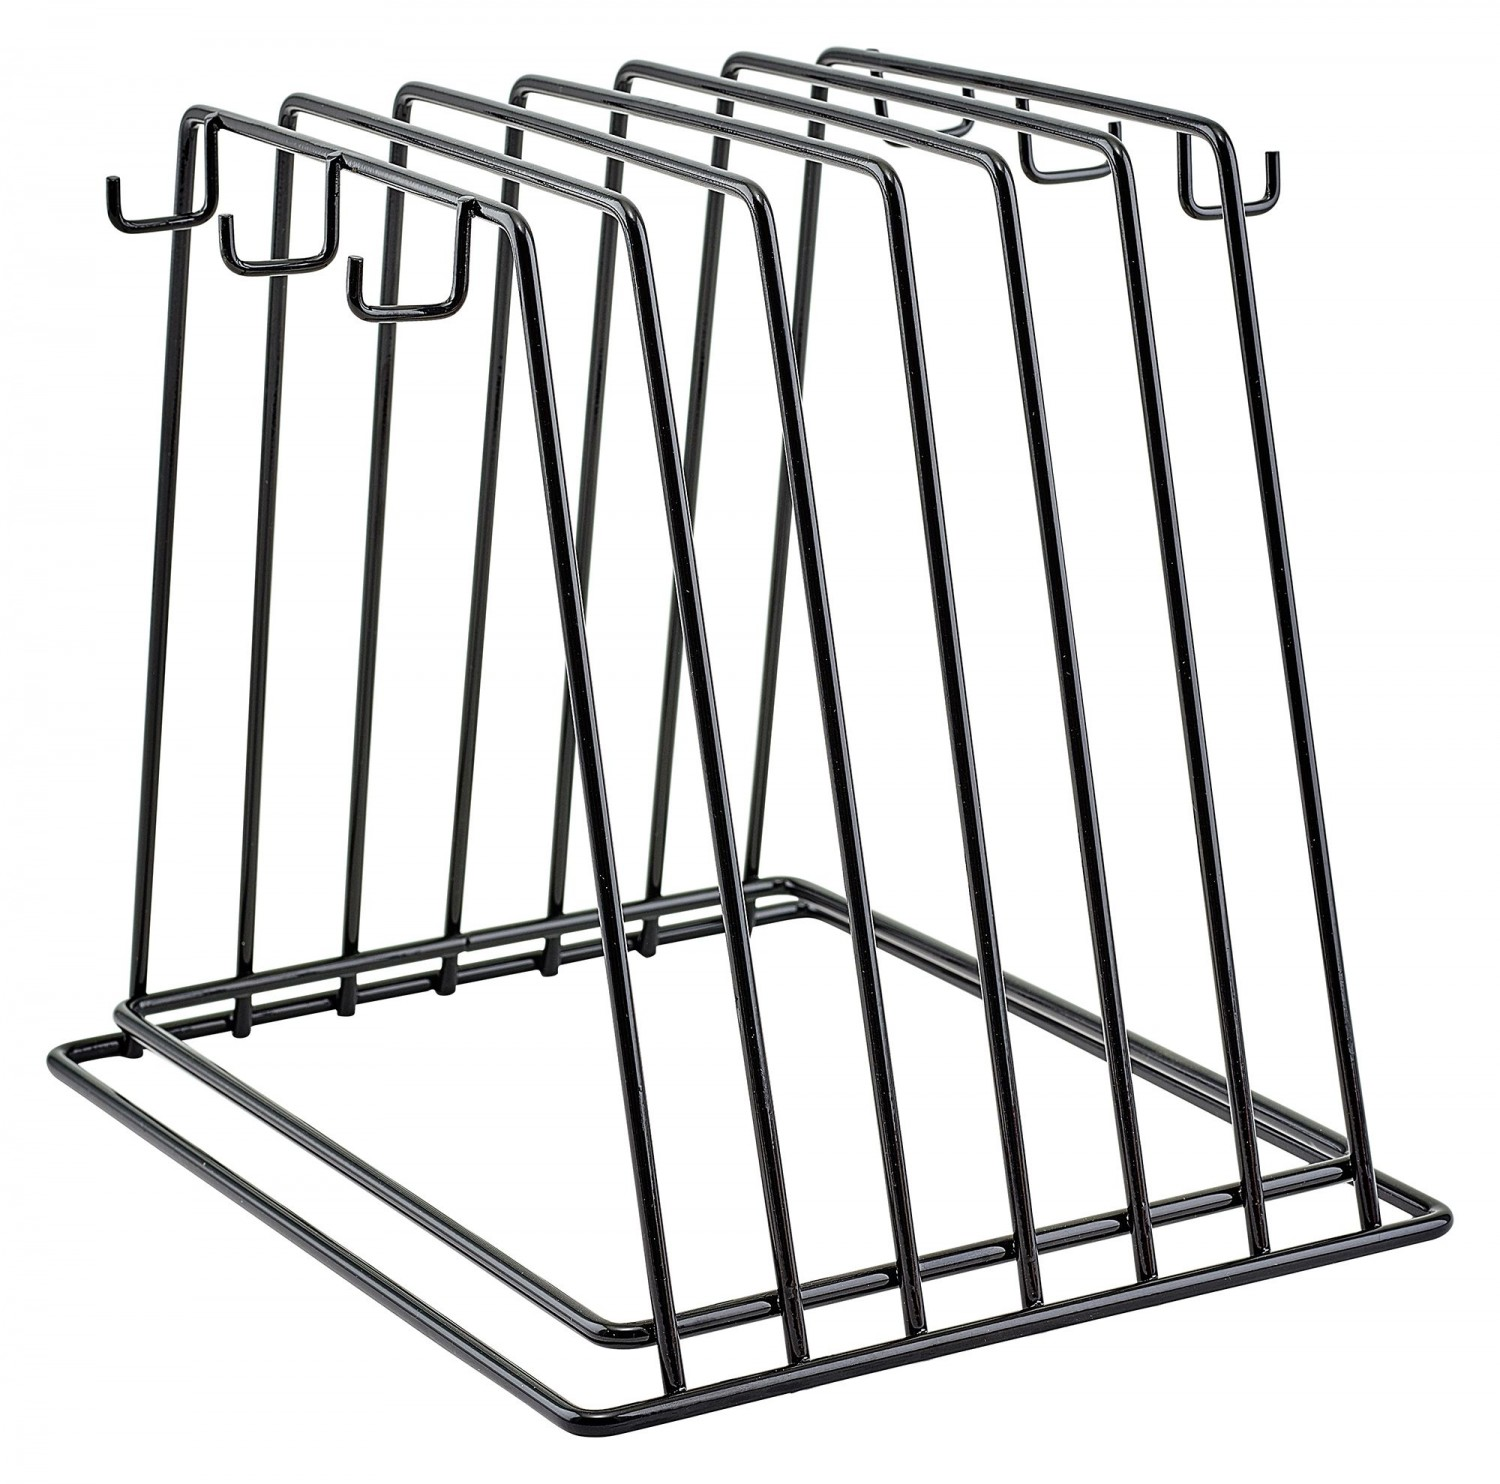 Winco CB-6K Cutting Board Rack with 6 Slots